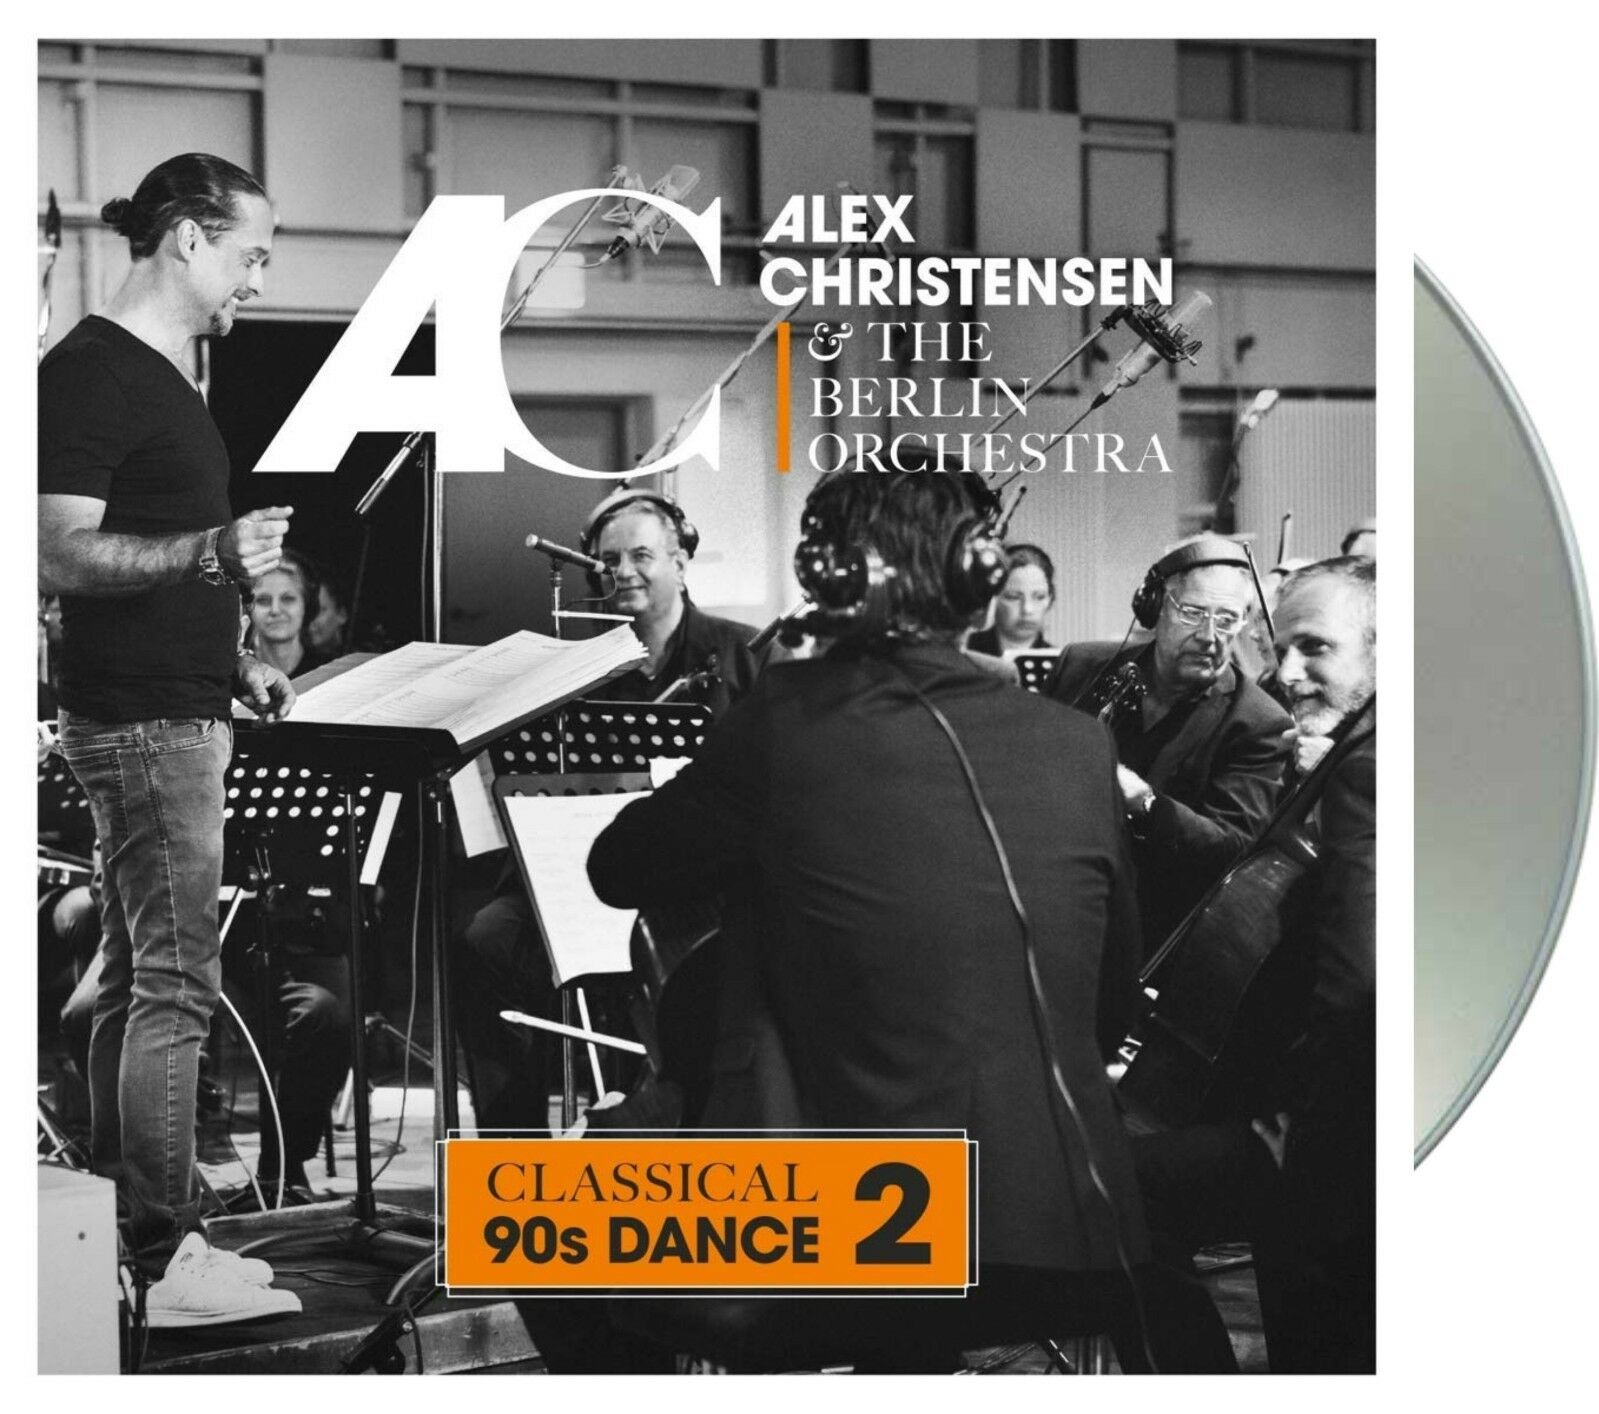 Alex Christensen & The Berlin Orchestra